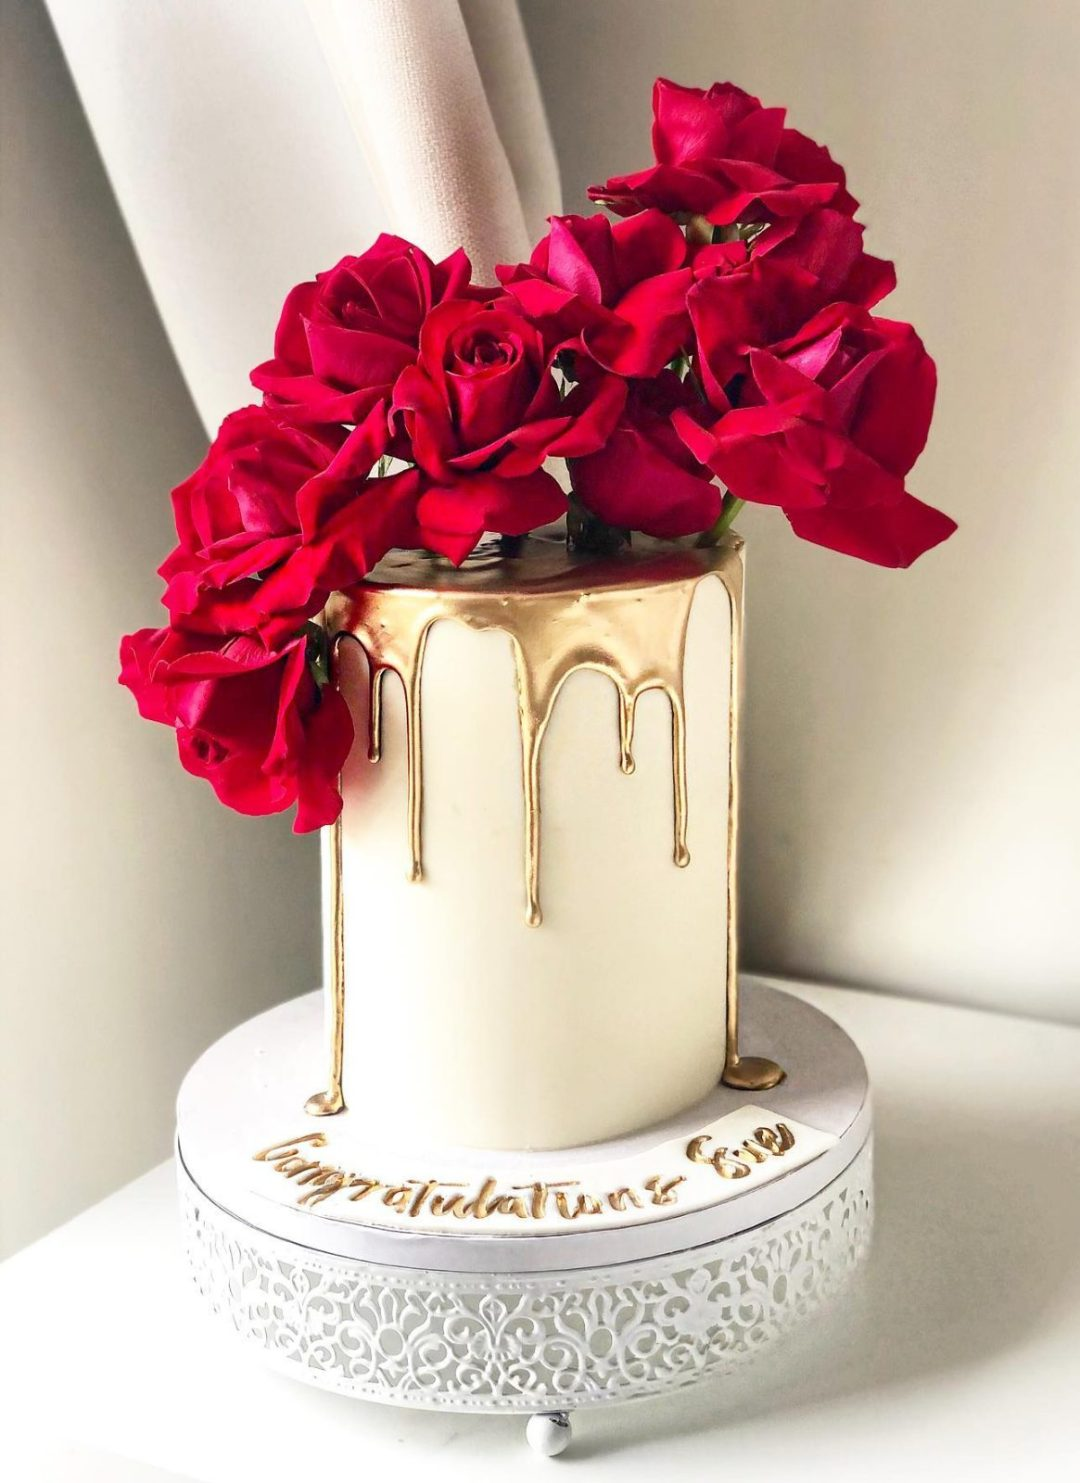 Elegant graduation cake with roses and dripping gold